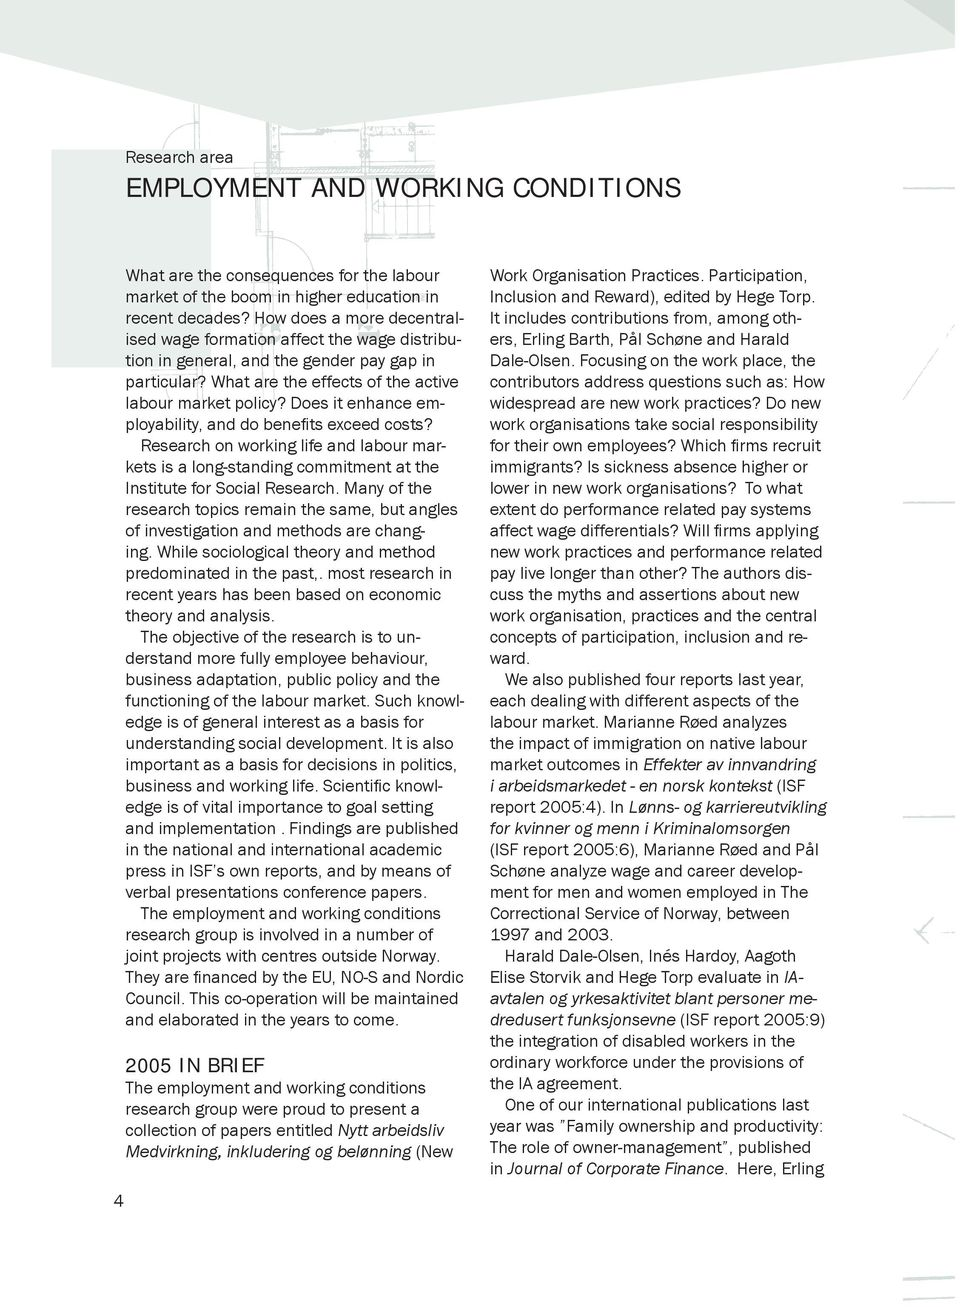 Does it enhance employability, and do benefi ts exceed costs? Research on working life and labour markets is a long-standing commitment at the Institute for Social Research.